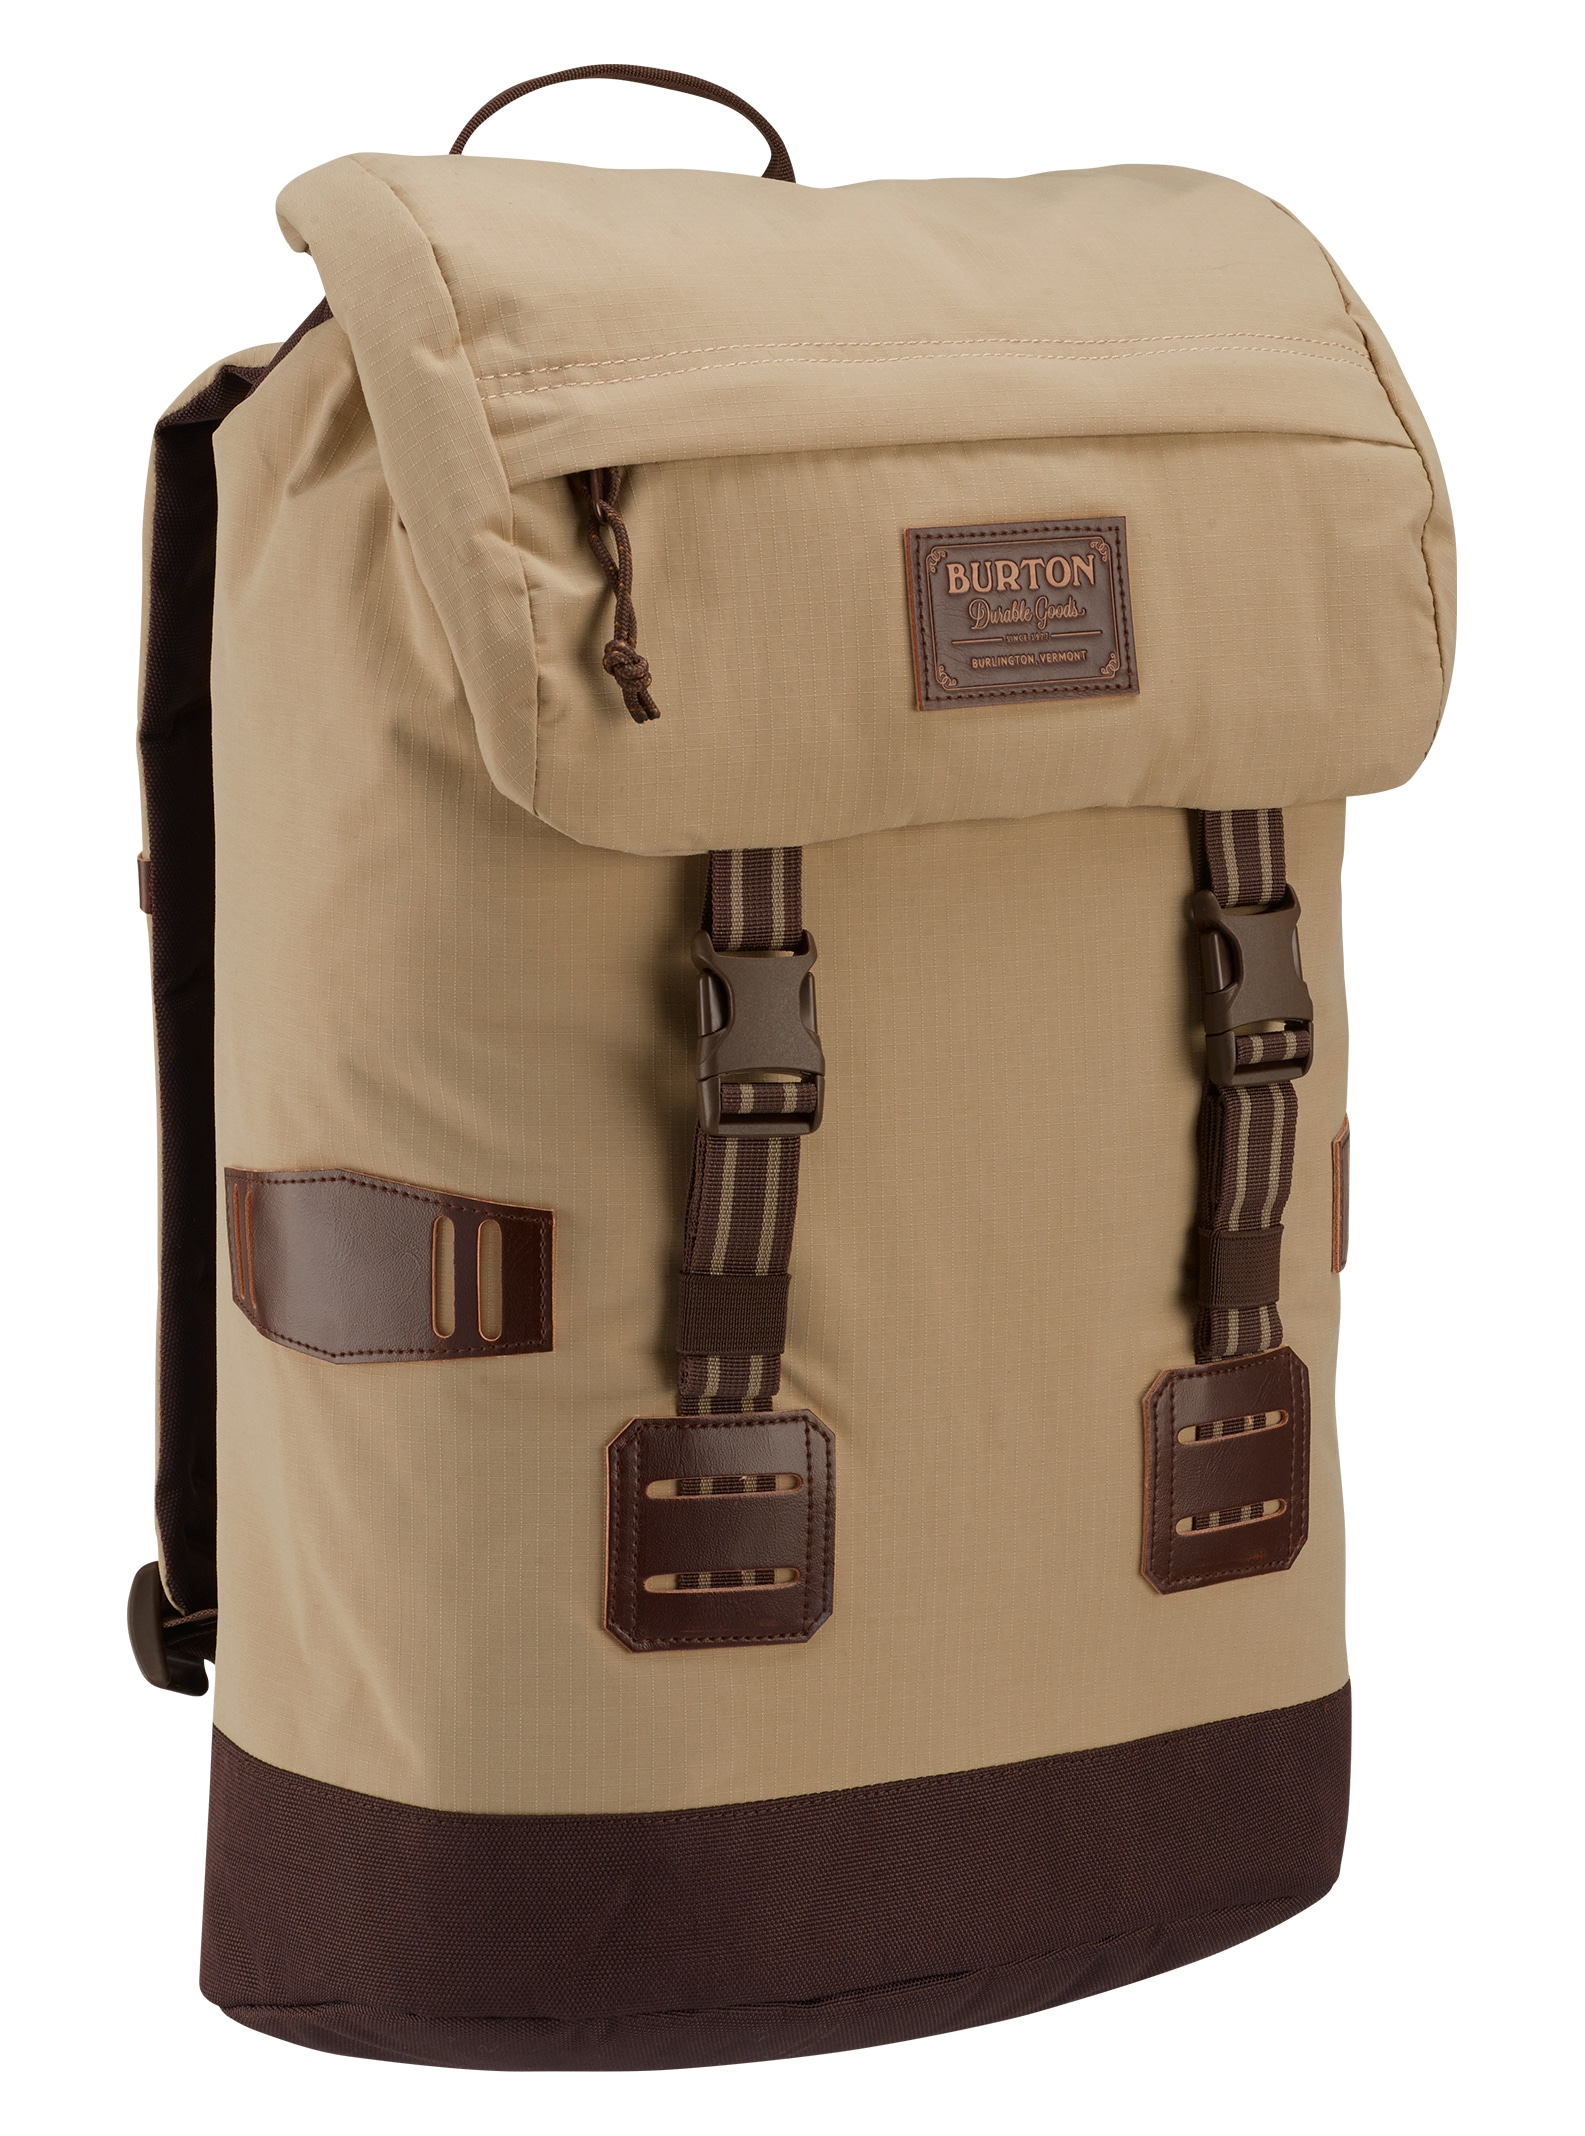 Burton Tinder Backpack shown in Putty Ripstop